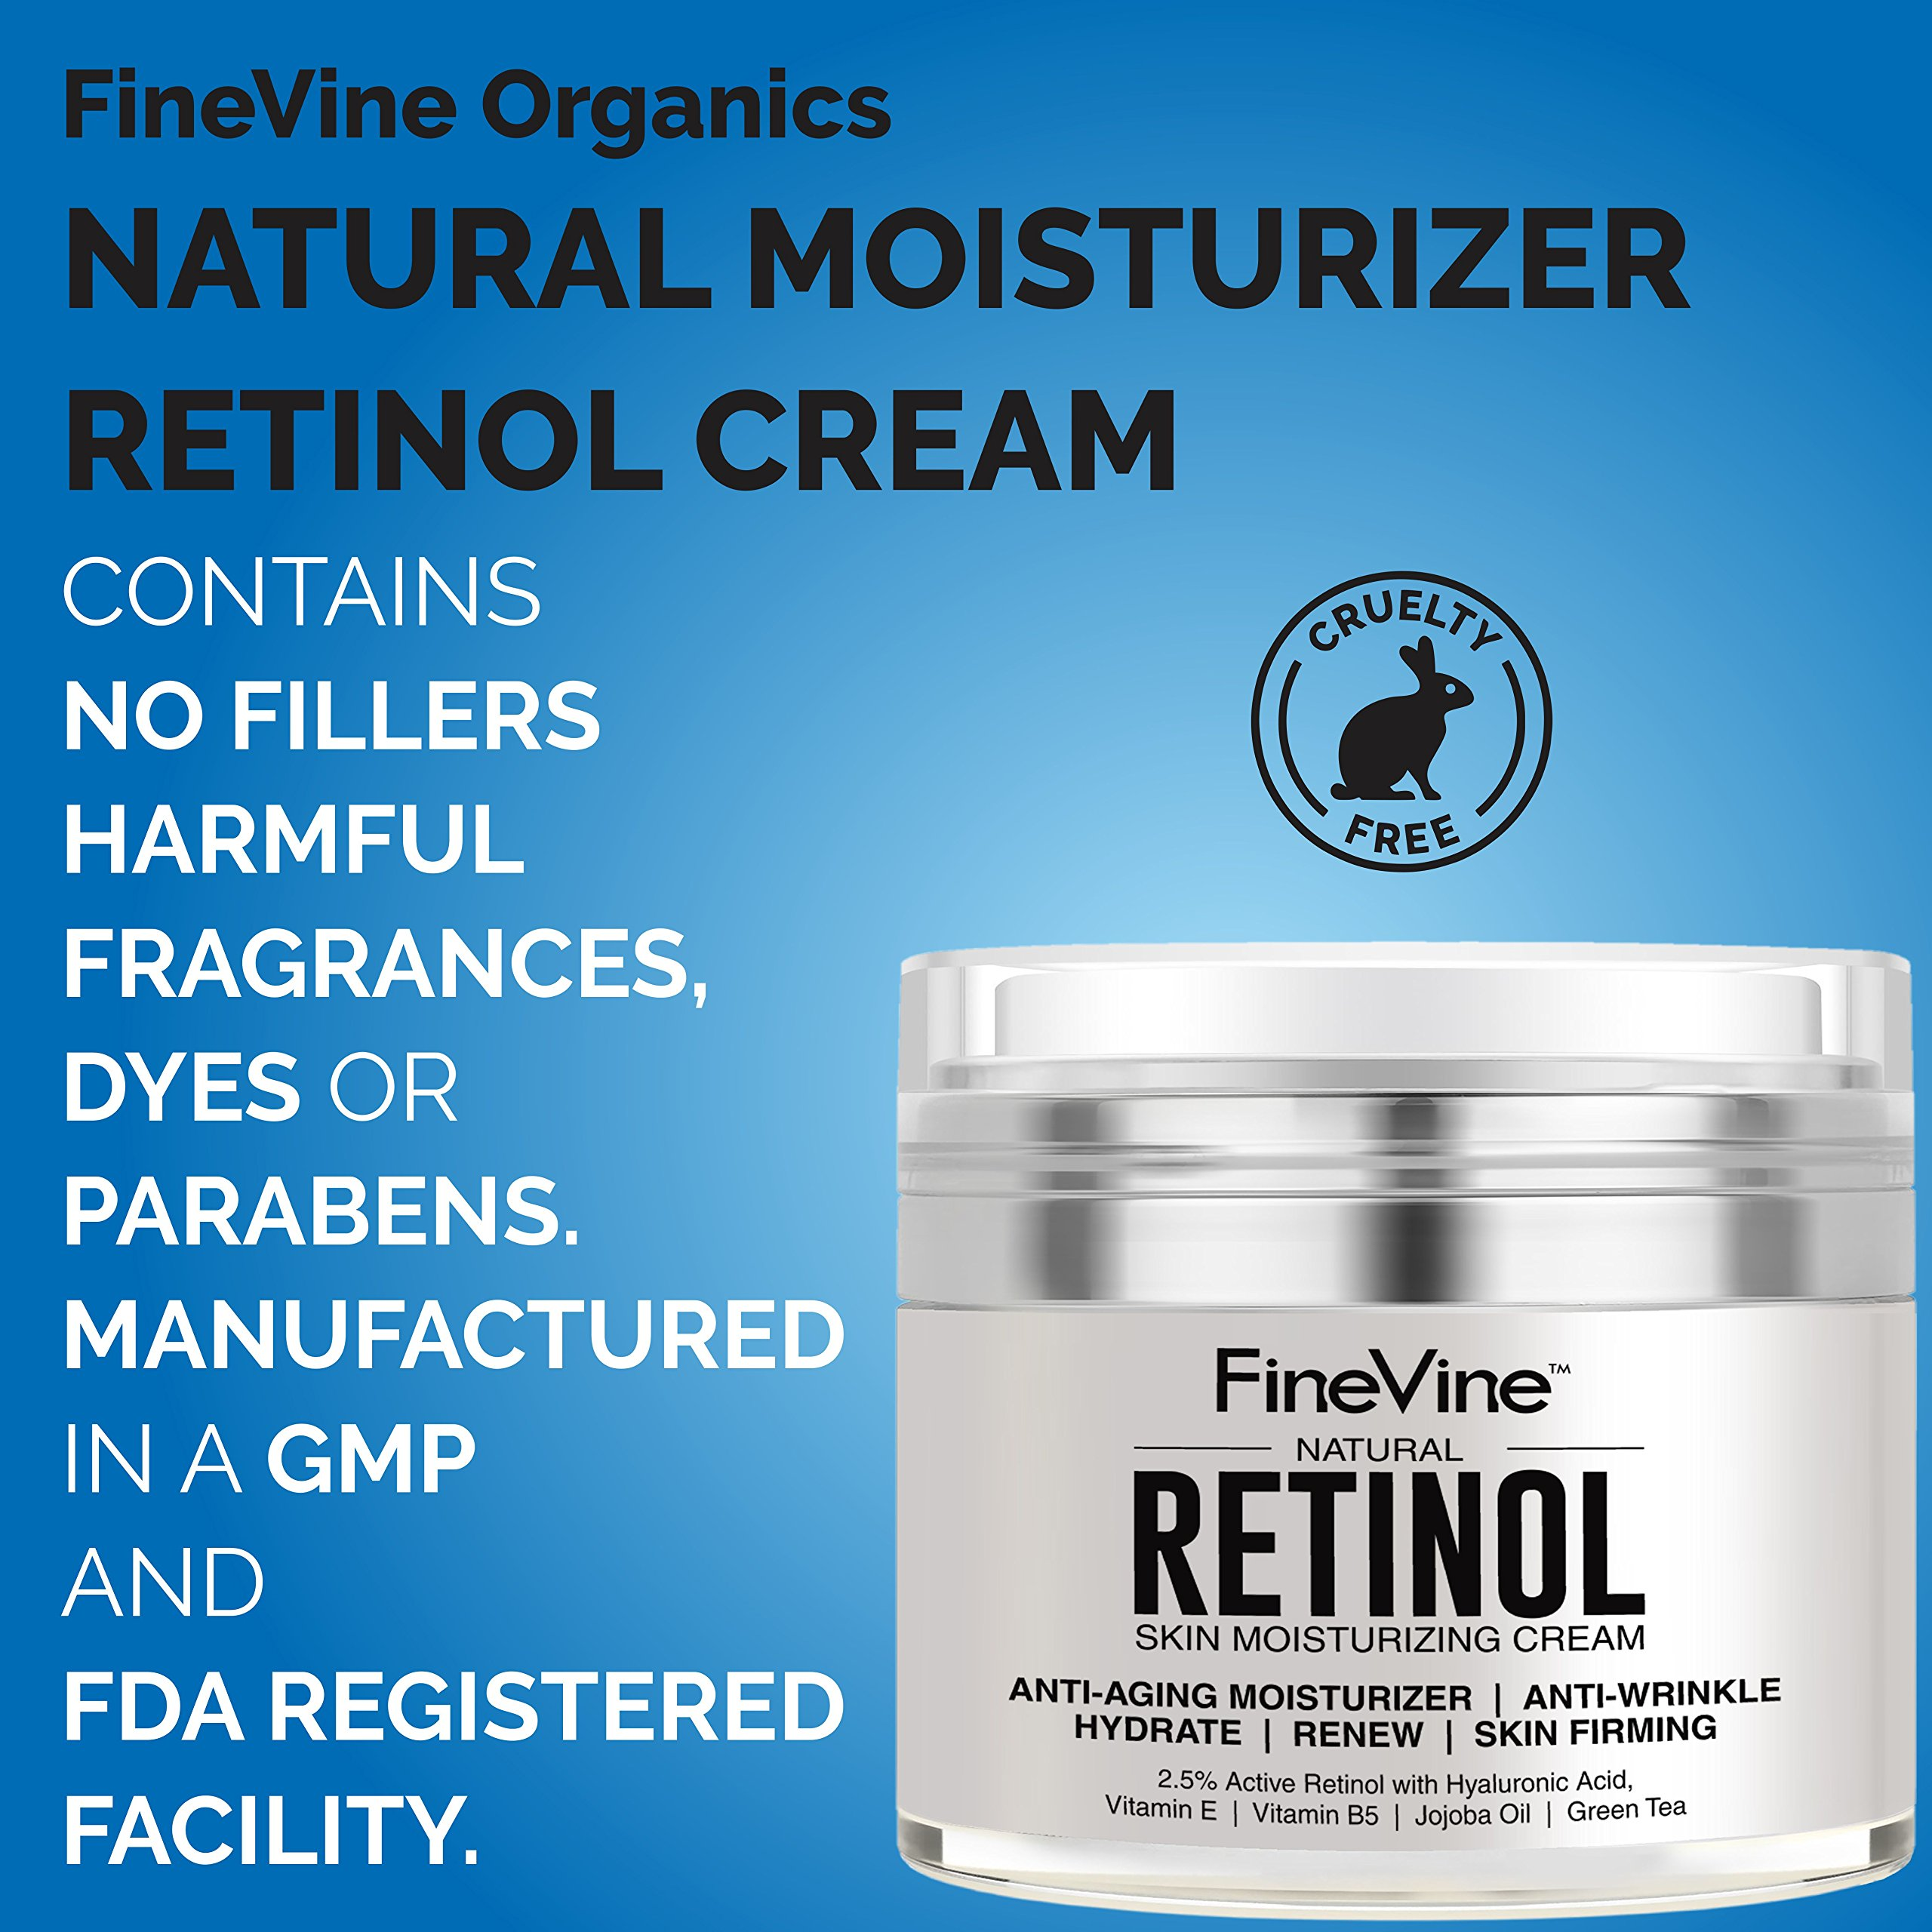 Retinol Moisturizer Cream for Face and Eye Area - Made in USA - with Hyaluronic Acid, Vitamin E - Best Day and Night Anti Aging Formula to Reduce Wrinkles, Fine Lines & Even Skin Tone. by FineVine (Image #9)